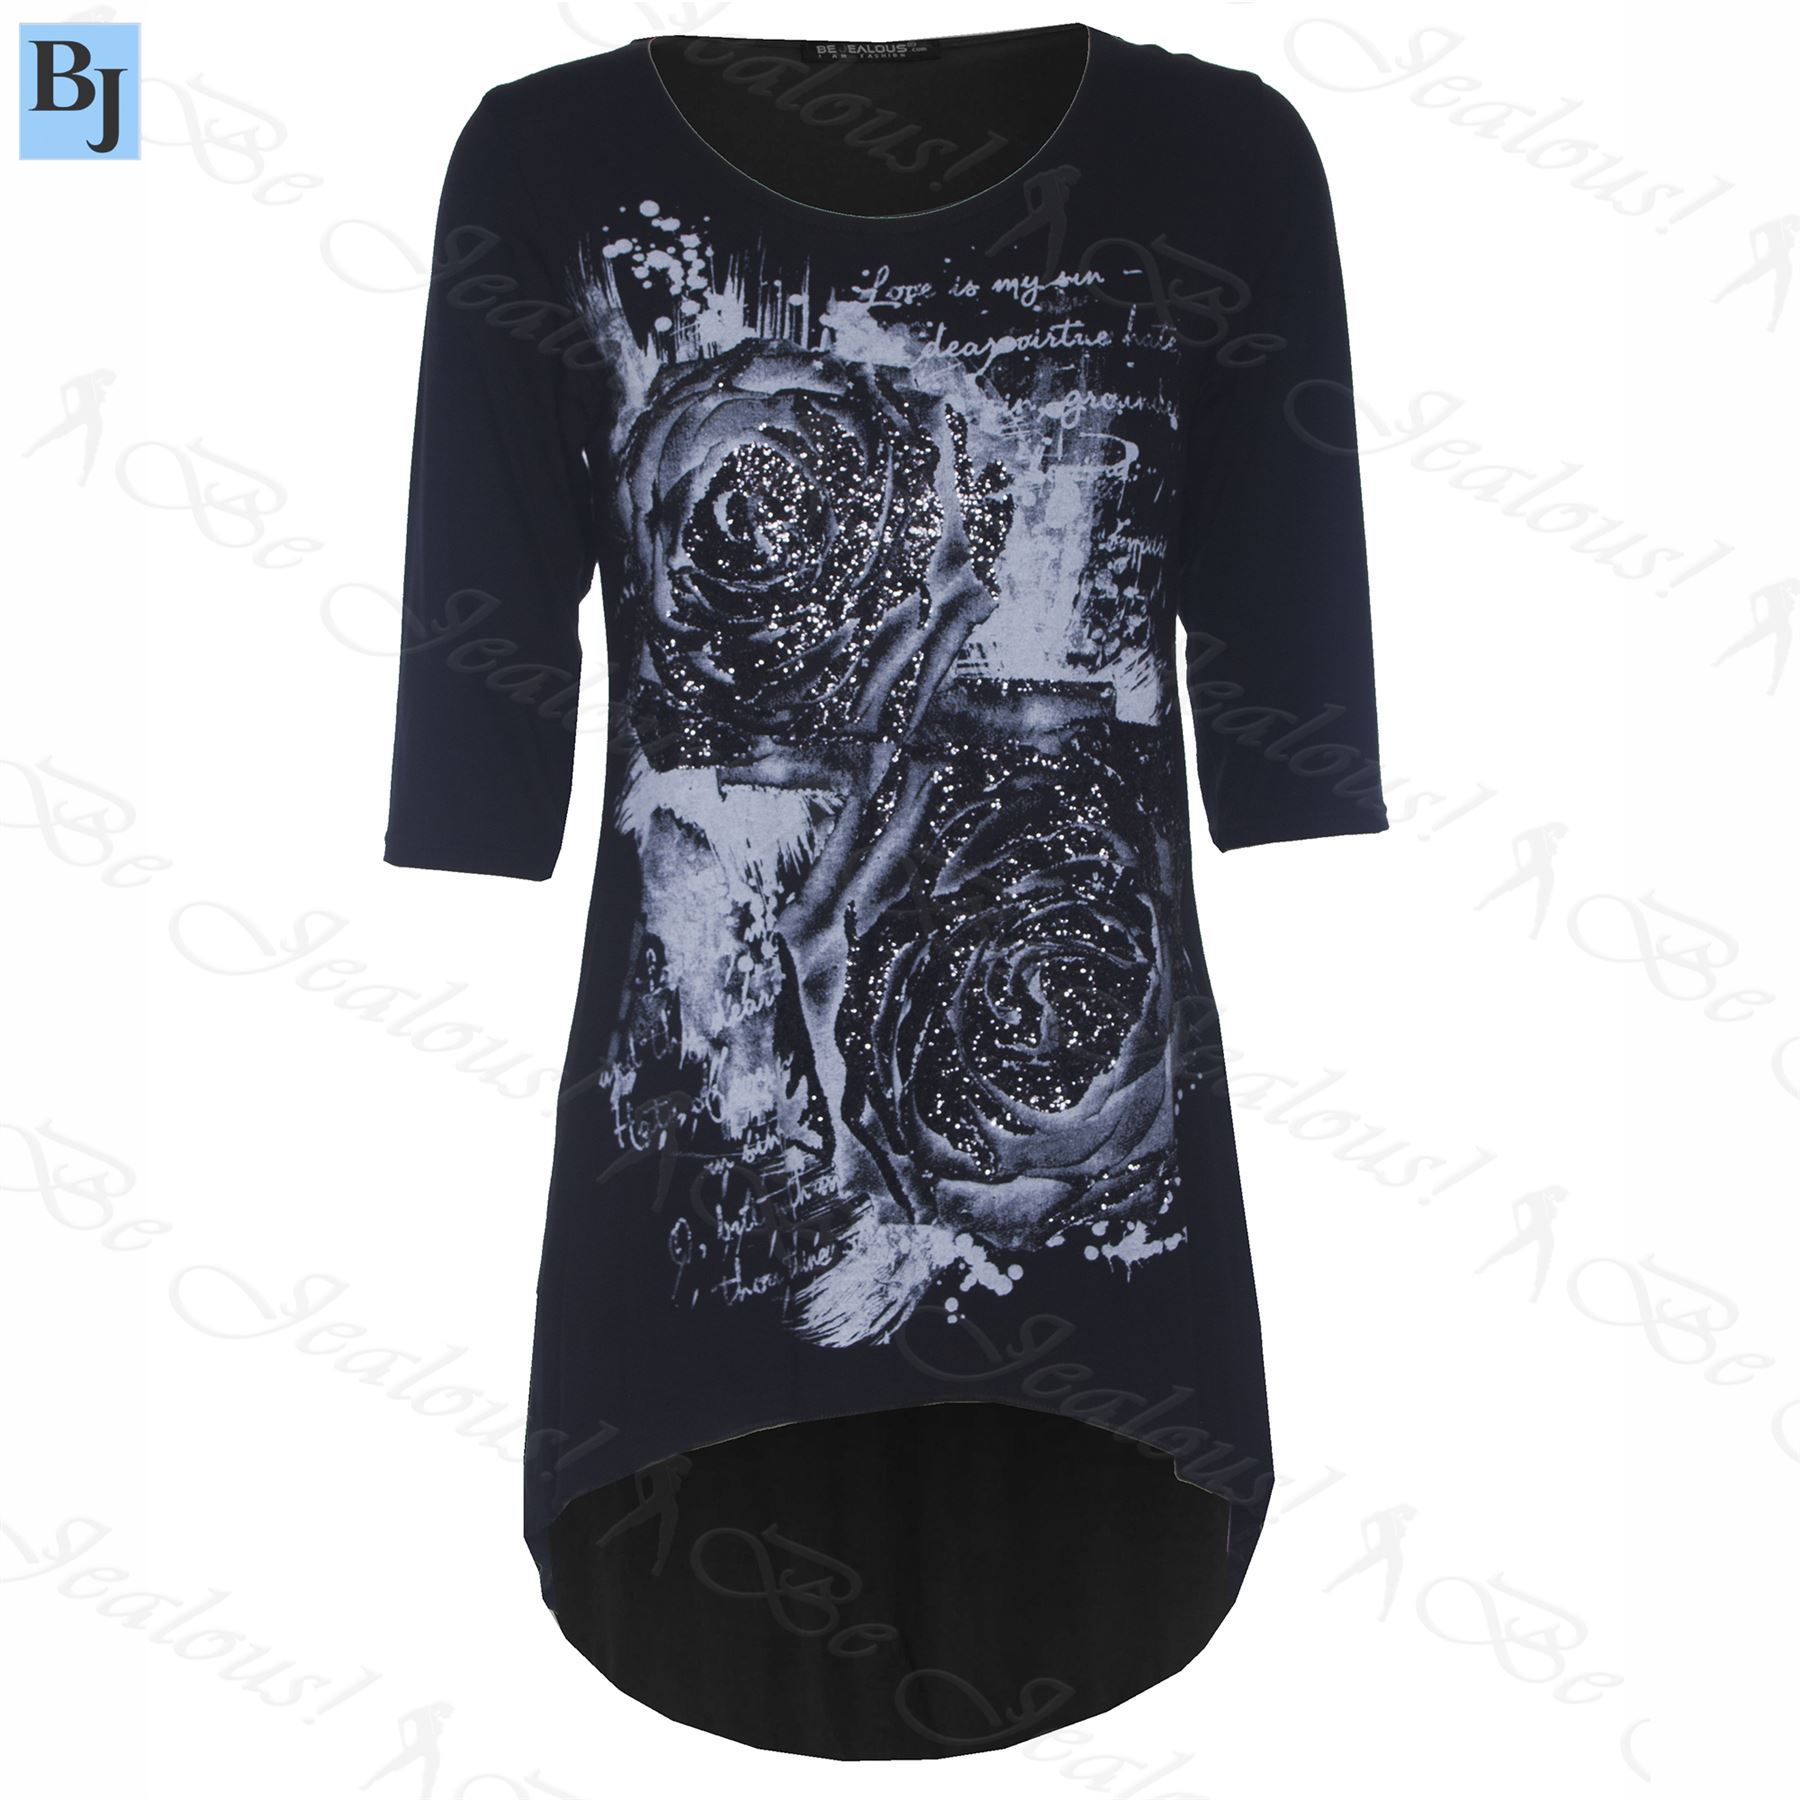 Womens plus size high low top ladies 3 4 sleeve rose for Plus size 3 4 sleeve tee shirts